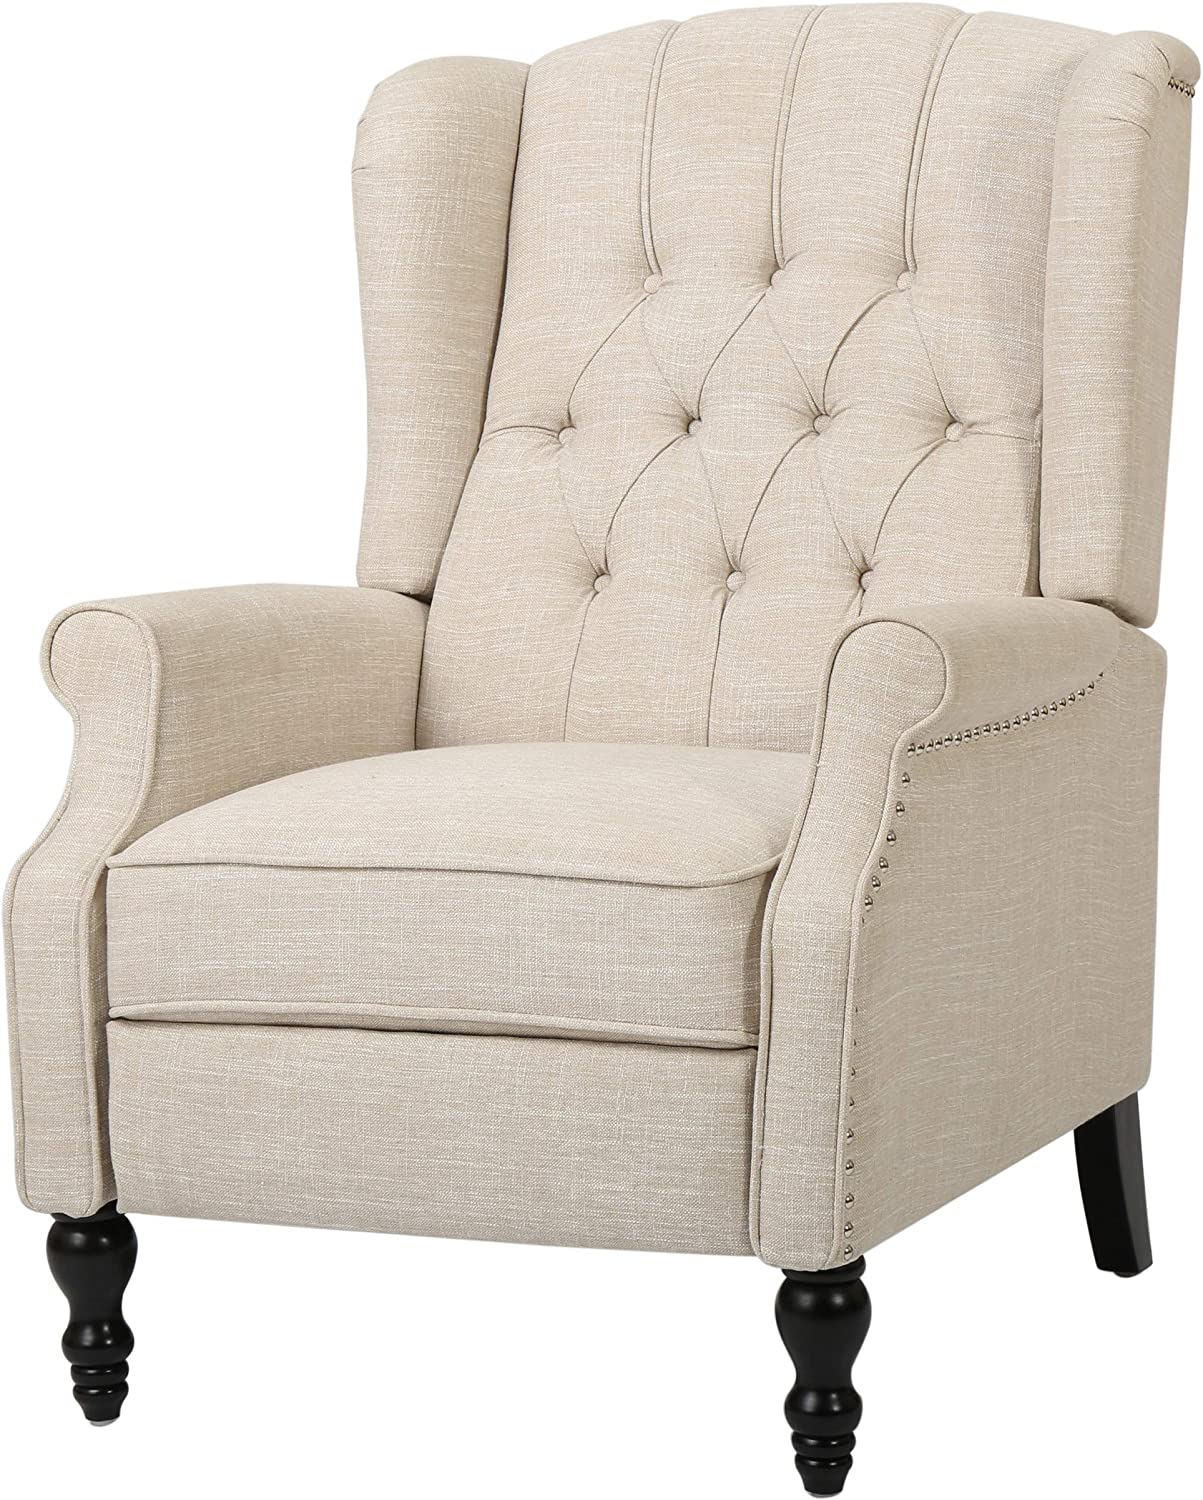 91%2BAcMb6qdL. AC SL1500 - What Is The Best Living Room Chair For Neck Pain - ChairPicks